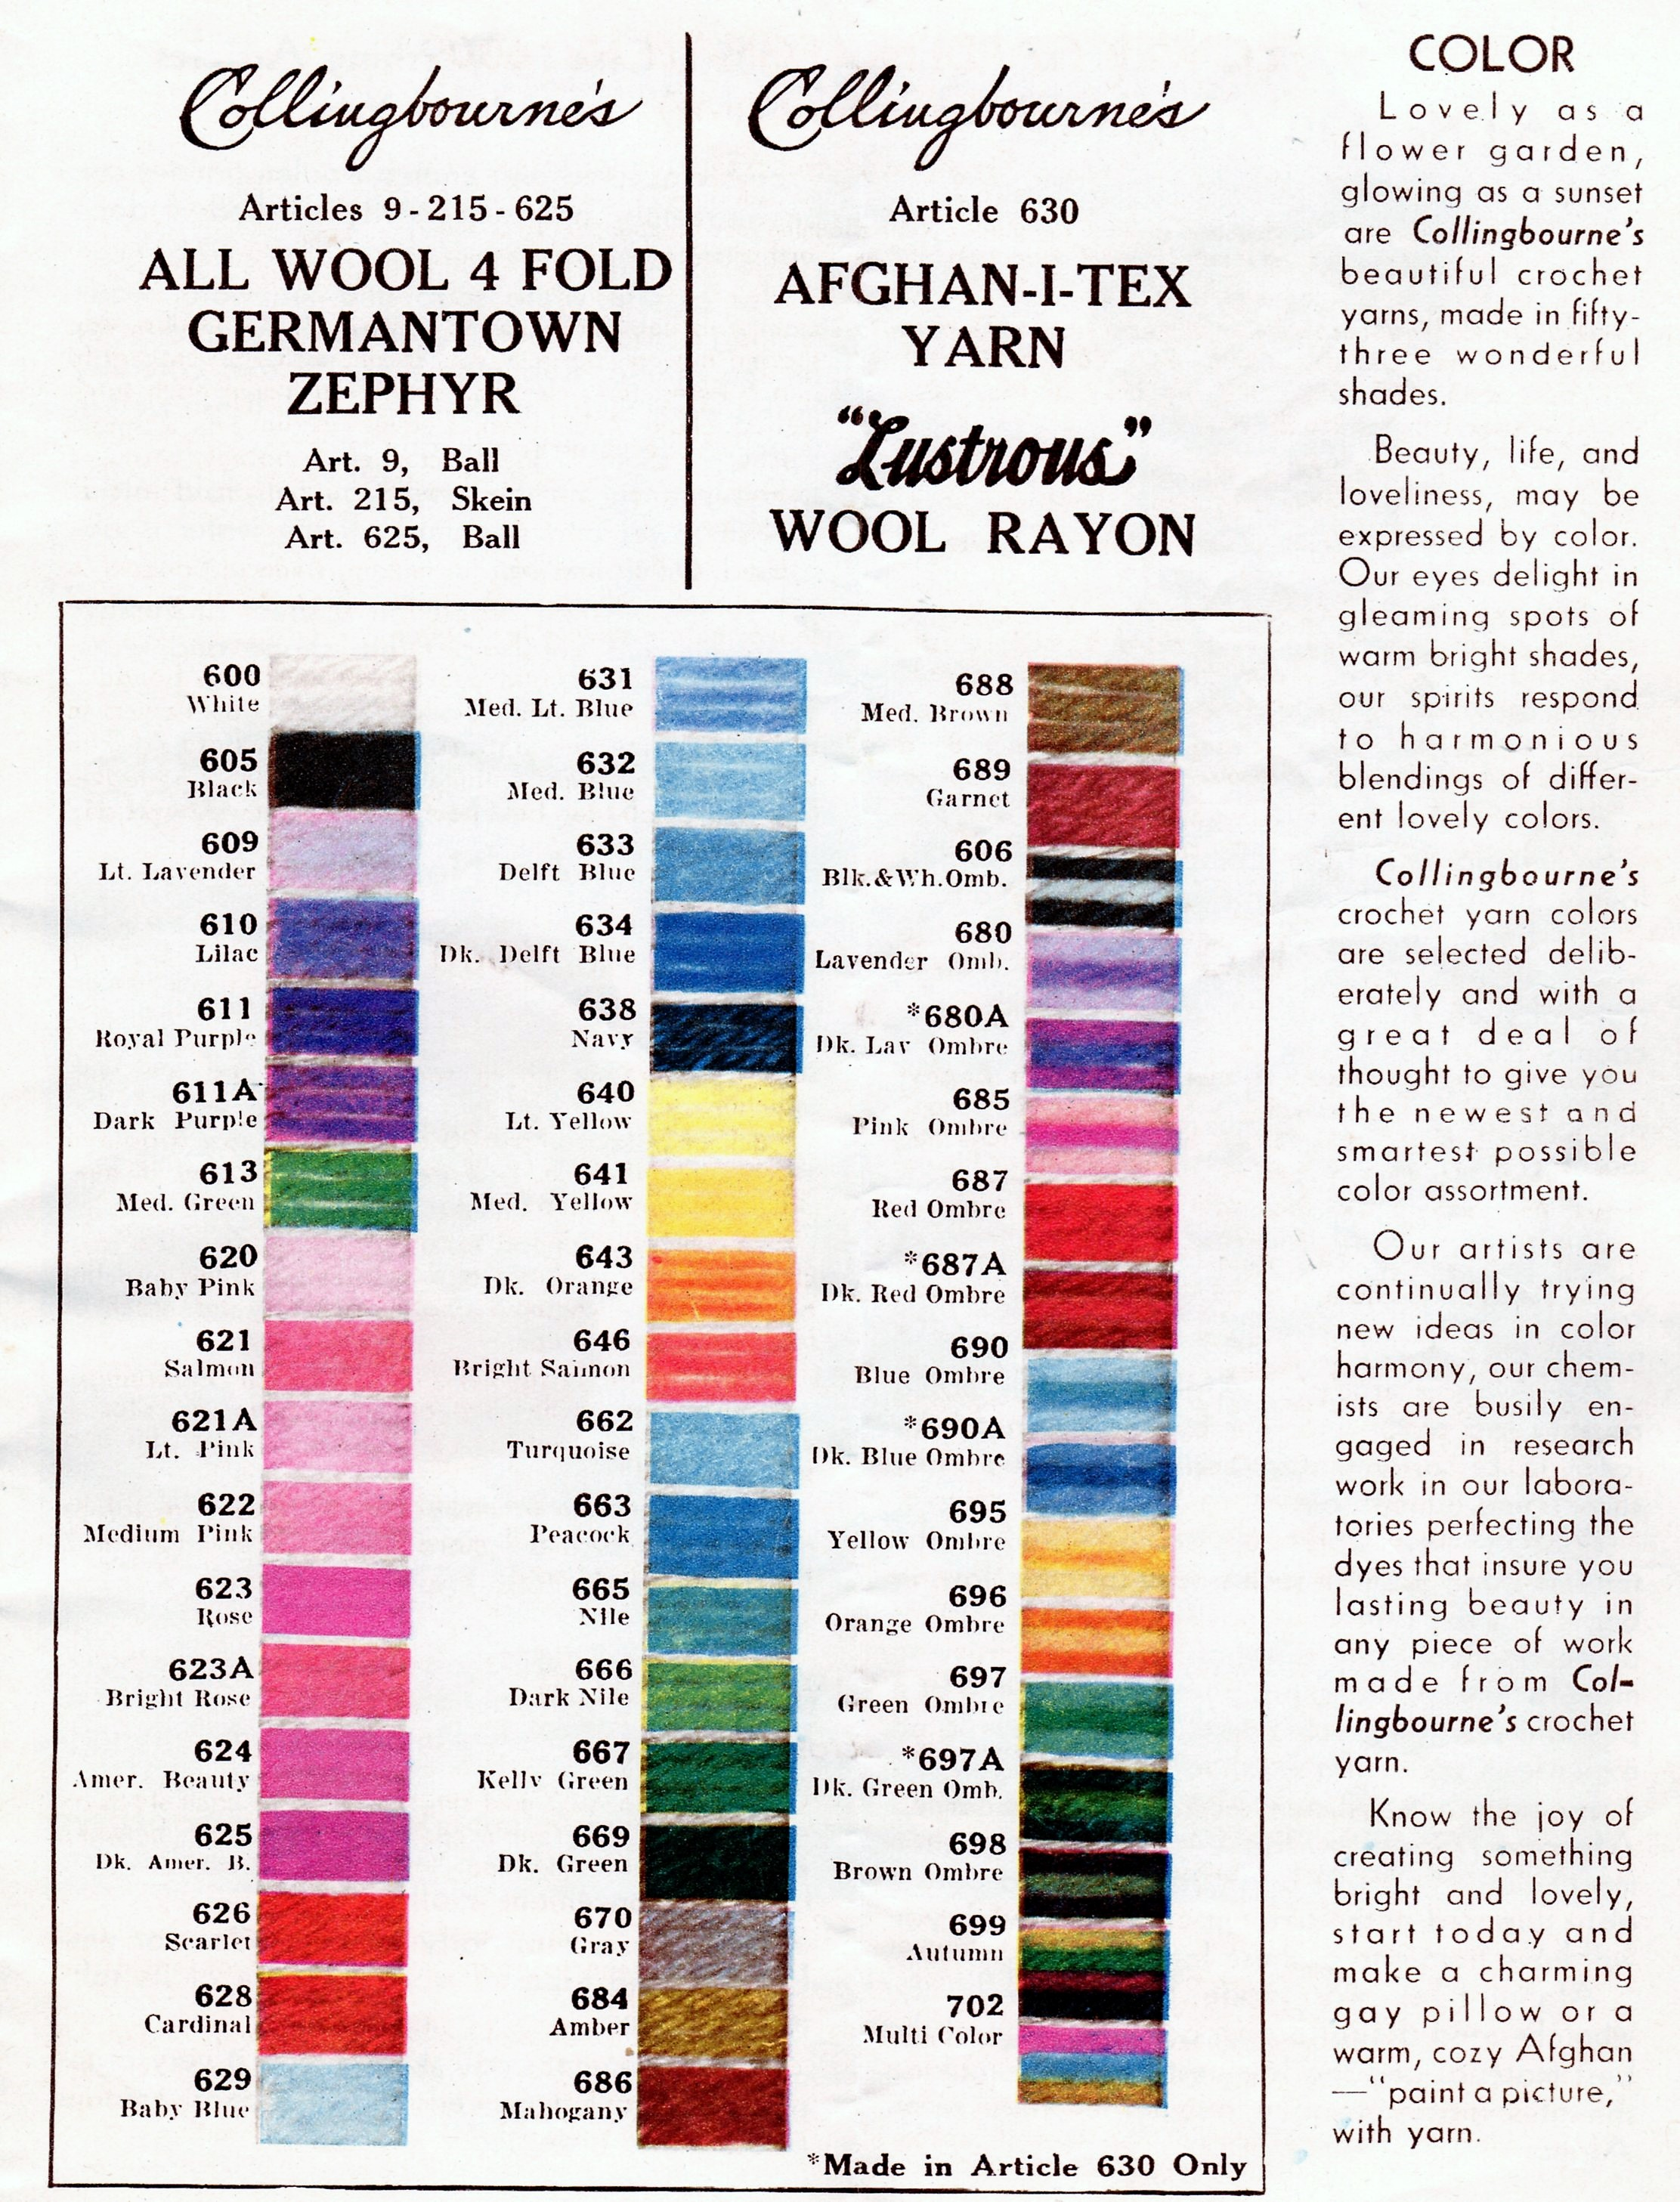 Granny Square Afghan Crochet Pattern Vintage Crafts And More Stitch Diagram Patterns Diagrams Collingbourne Yarn Lustrous Wool Rayon Chart